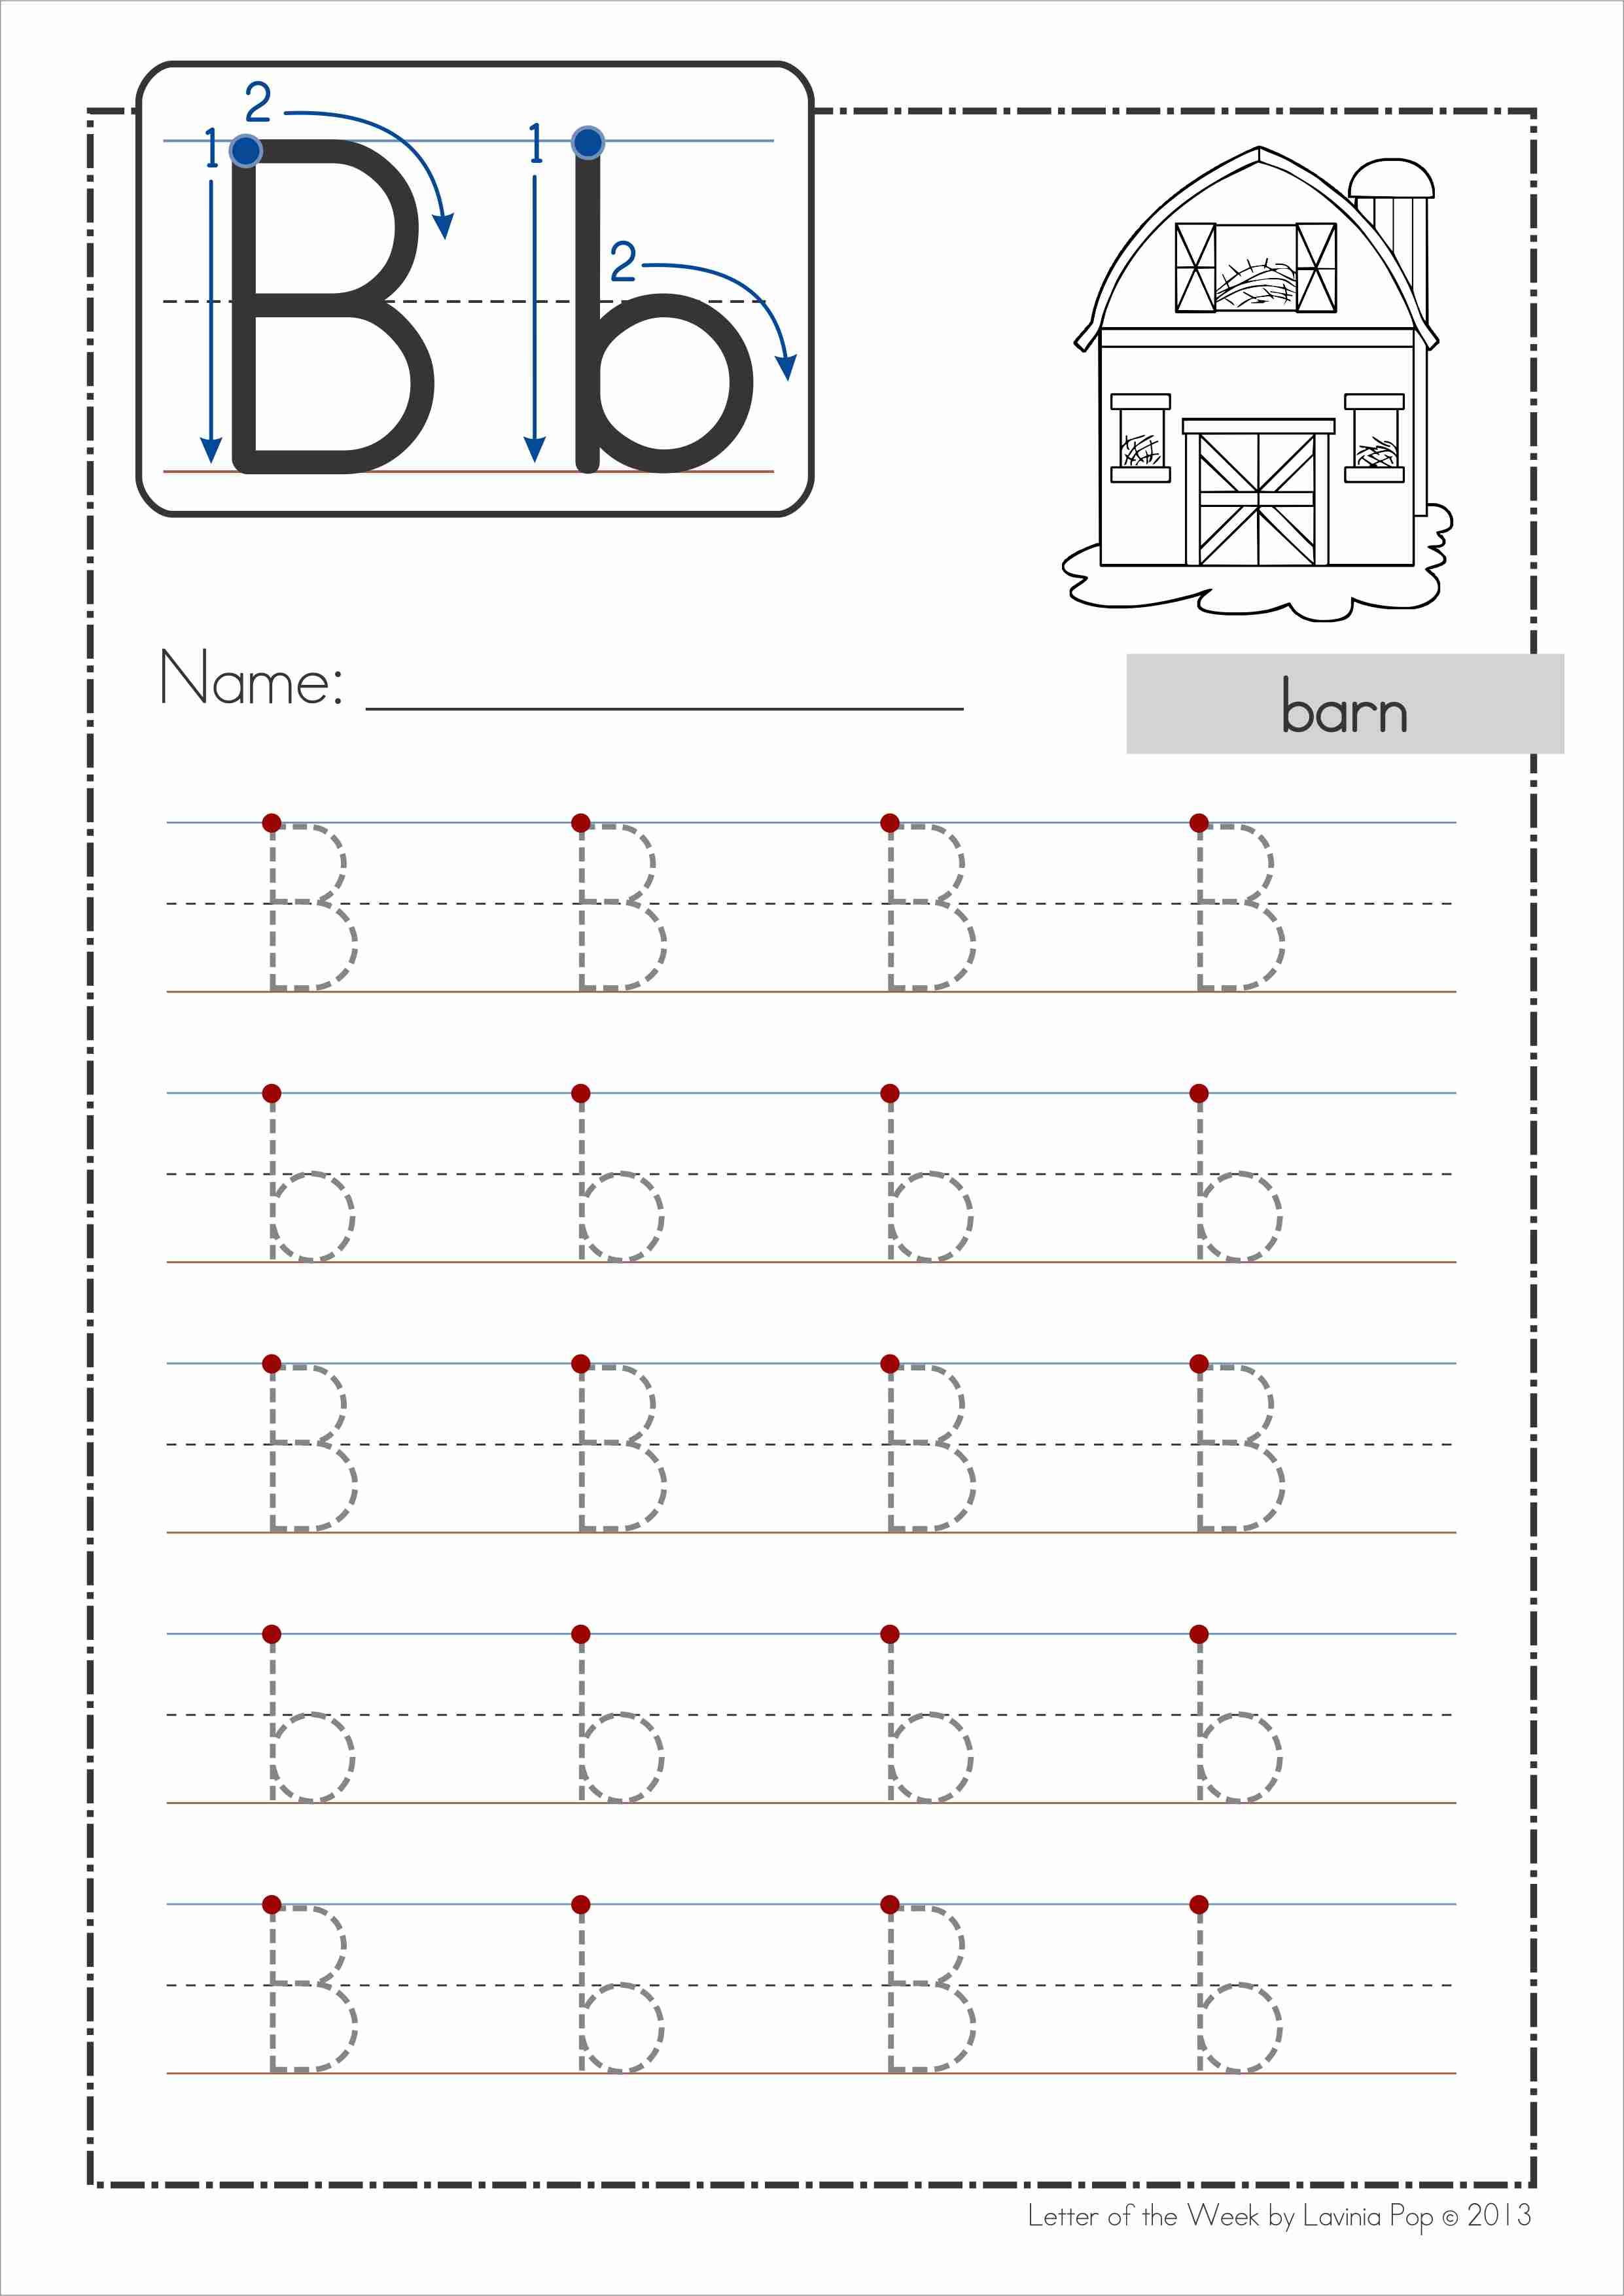 Phonics Letter Of The Week Bb Free A Huge Unit 81 Pages With Al Alphabet Worksheets Preschool Tracing Worksheets Preschool Letter Worksheets For Preschool [ 3510 x 2482 Pixel ]